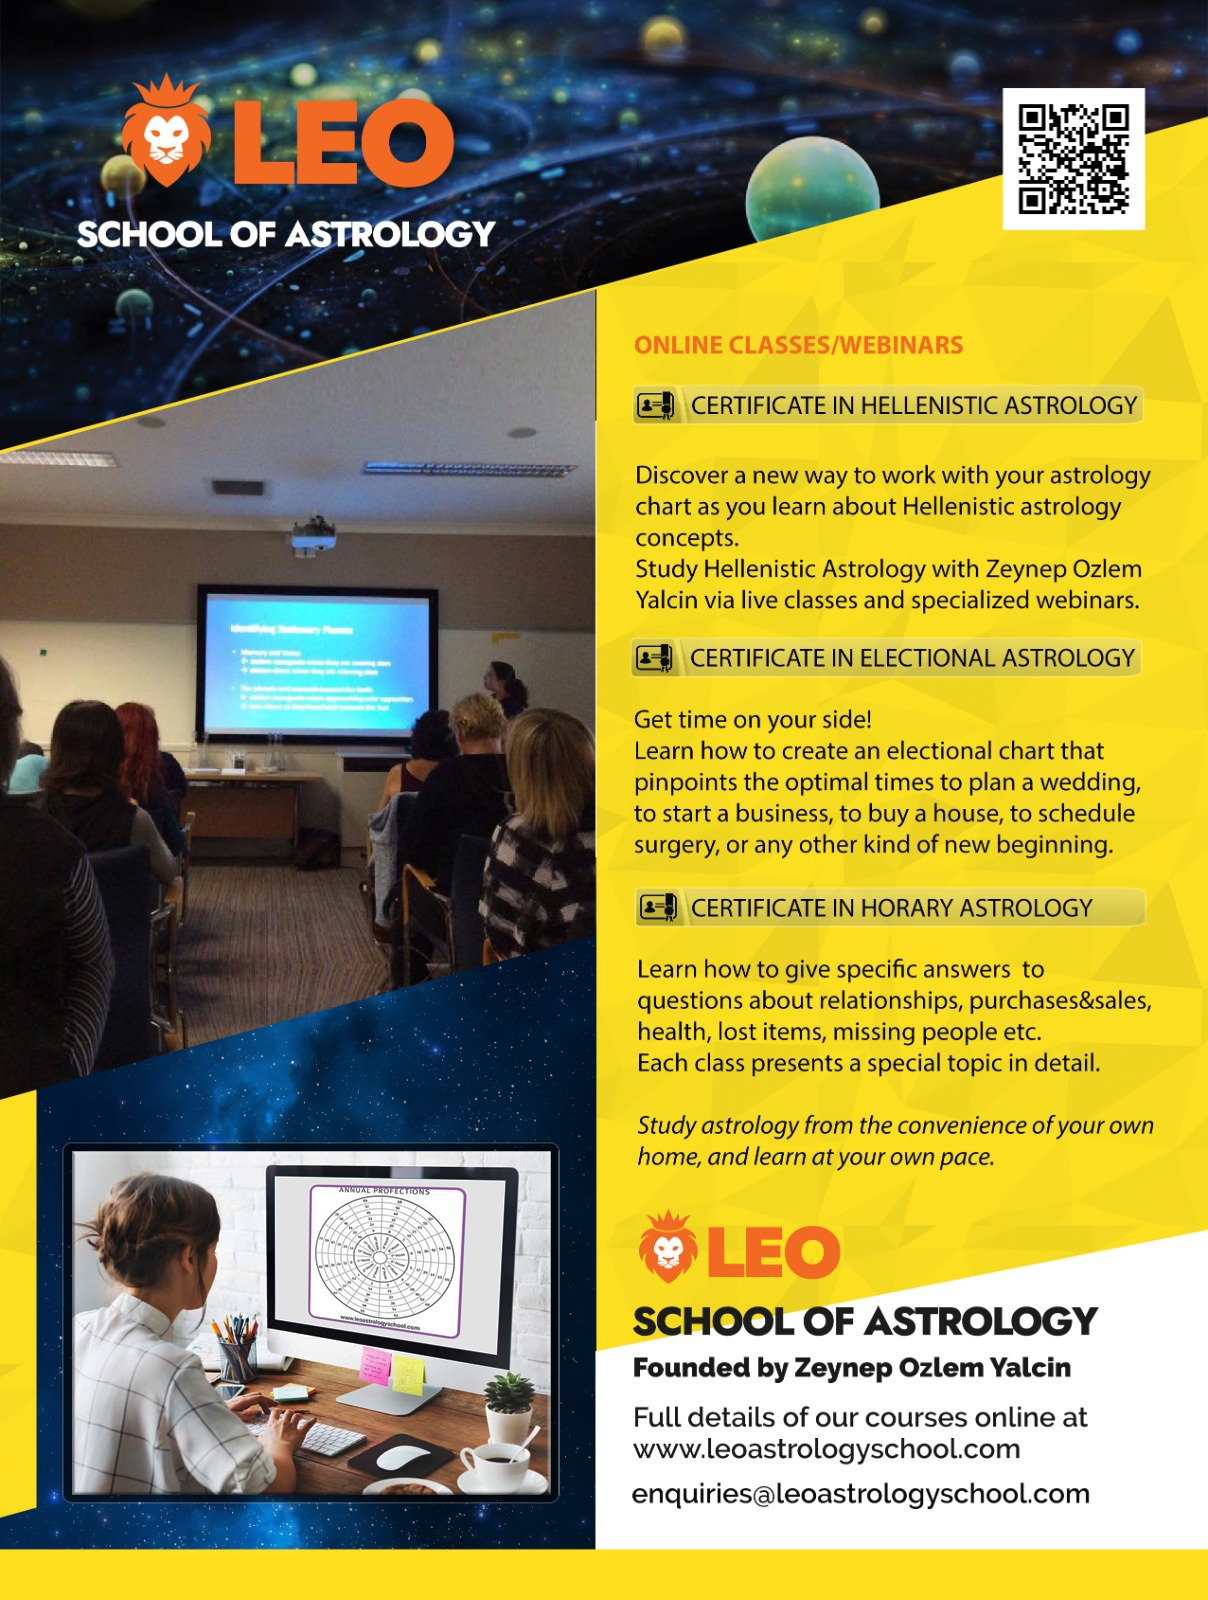 LEO Astrologie school